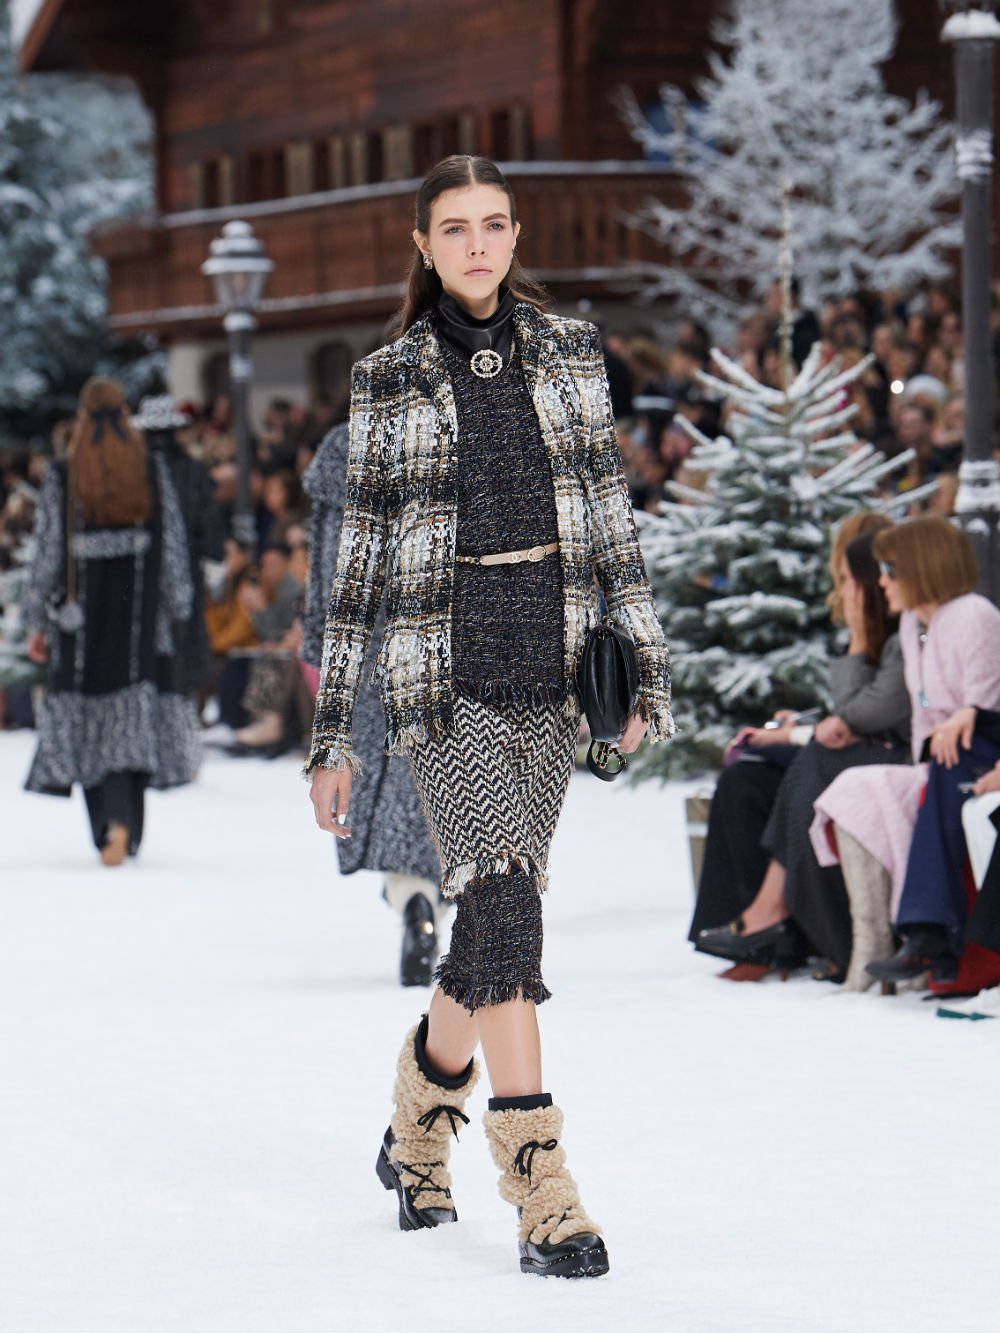 FALL-WINTER 201920 READY-TO-WEAR COLLECTION (14)